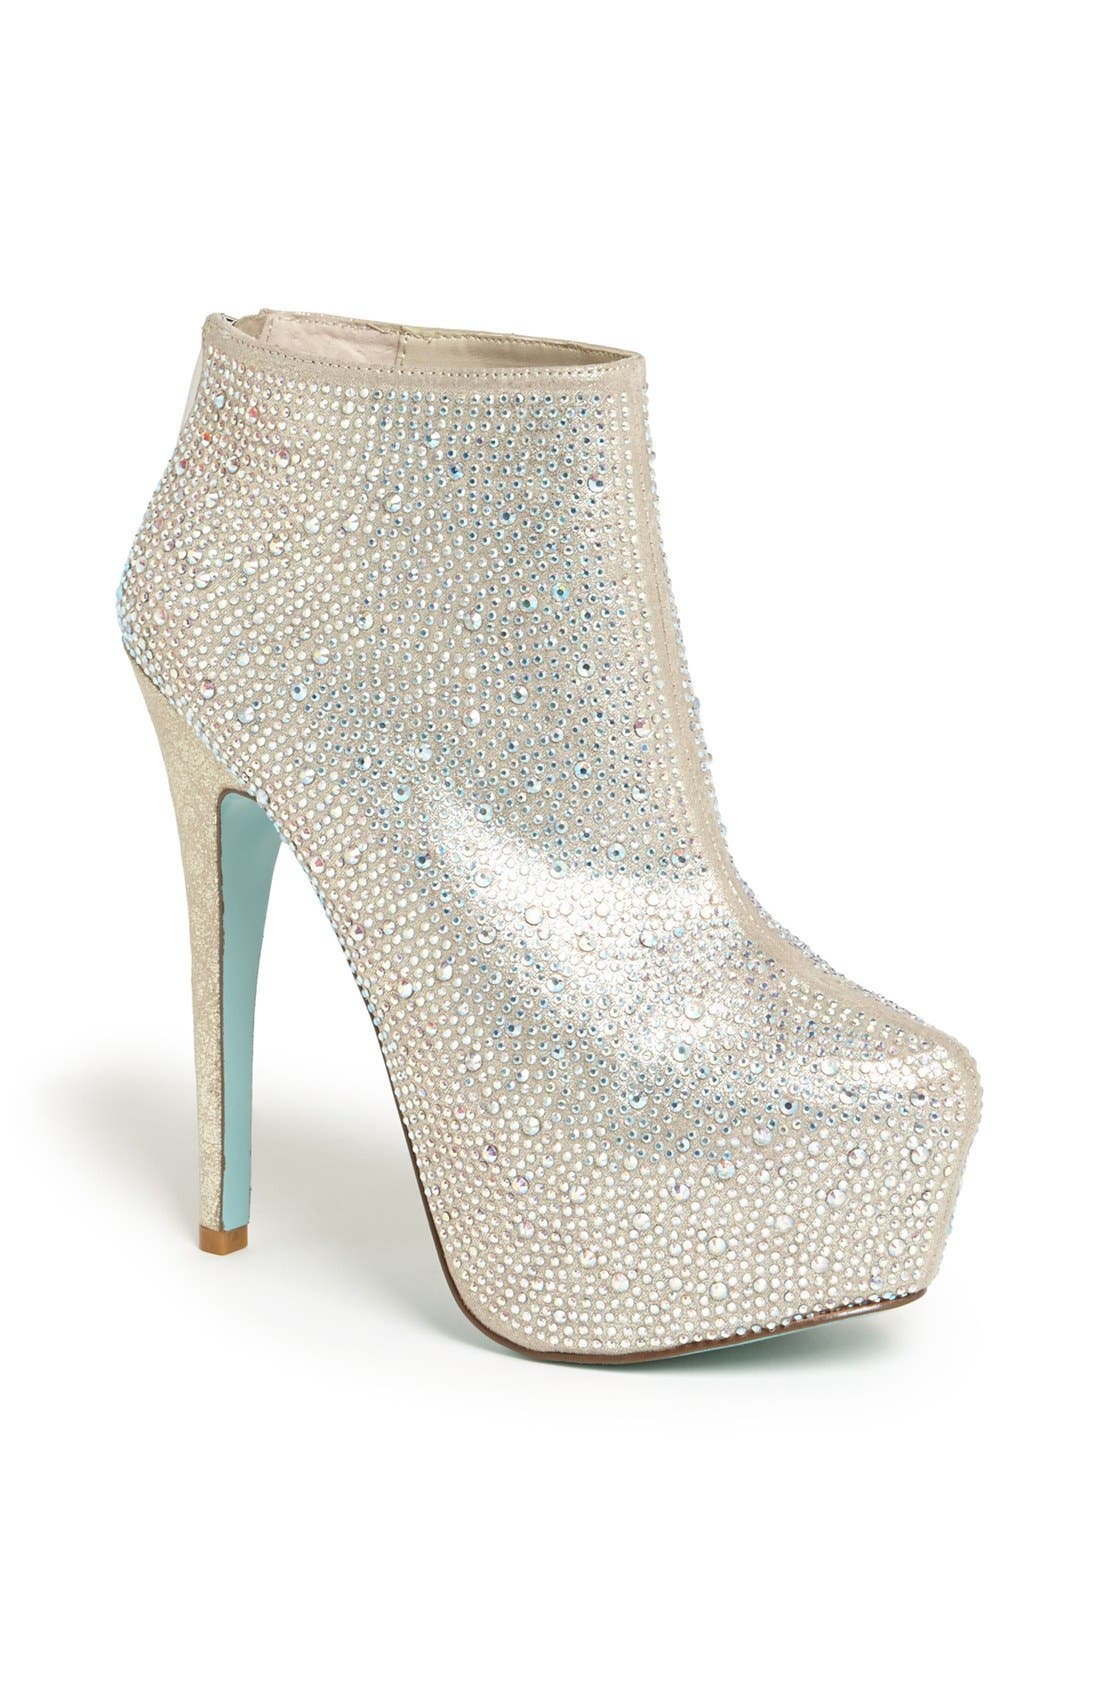 Alternate Image 1 Selected - Blue by Betsey Johnson 'Bride' Bootie